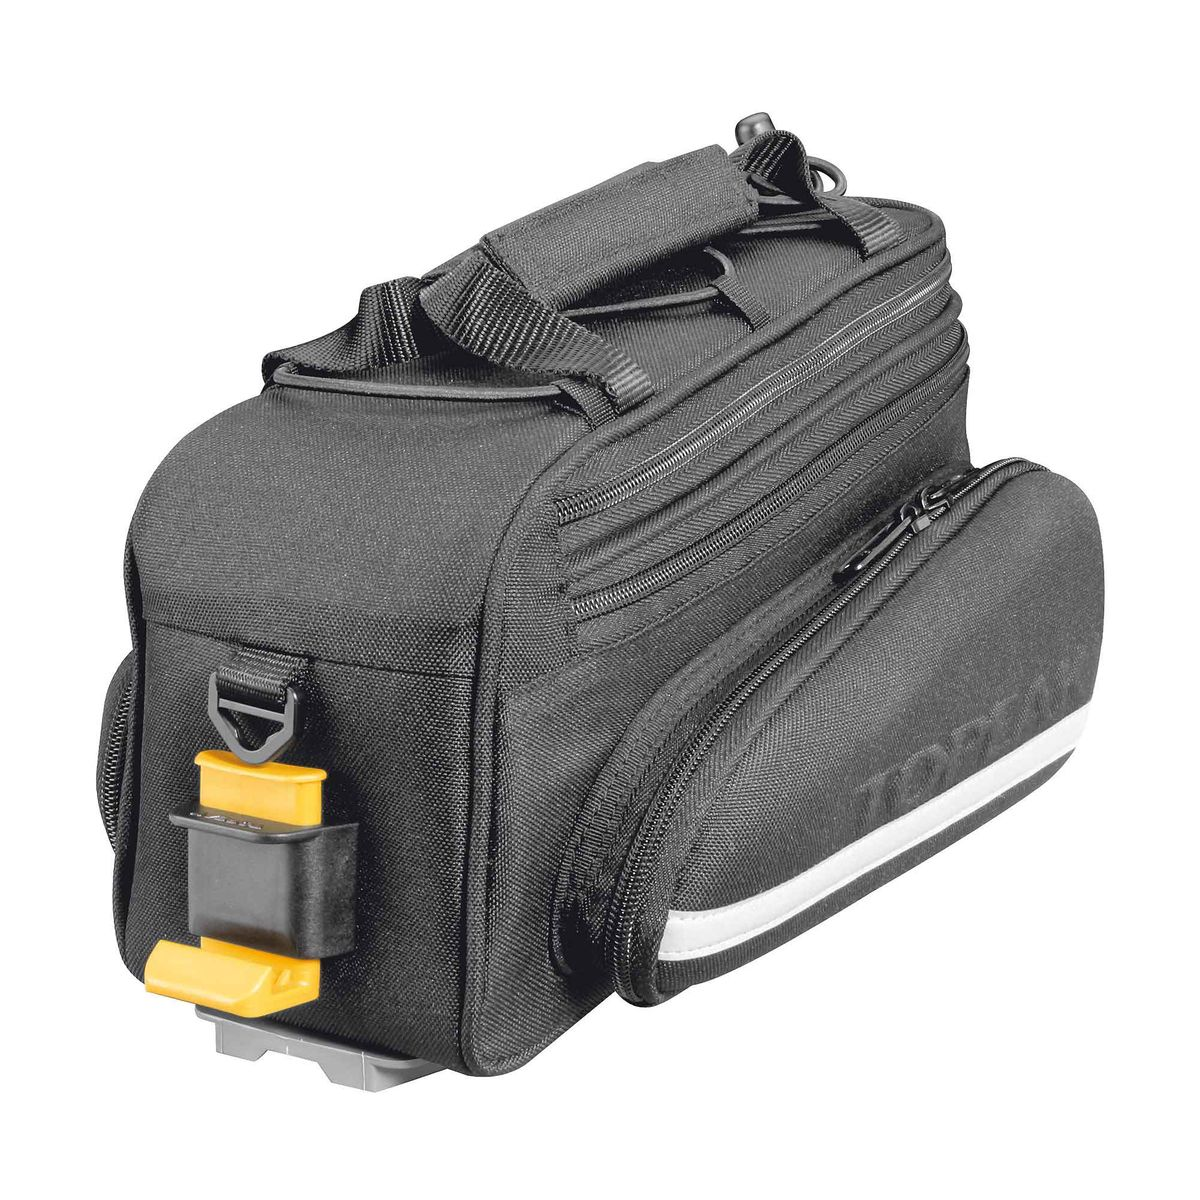 RX TrunkBag Tour DX rack pack